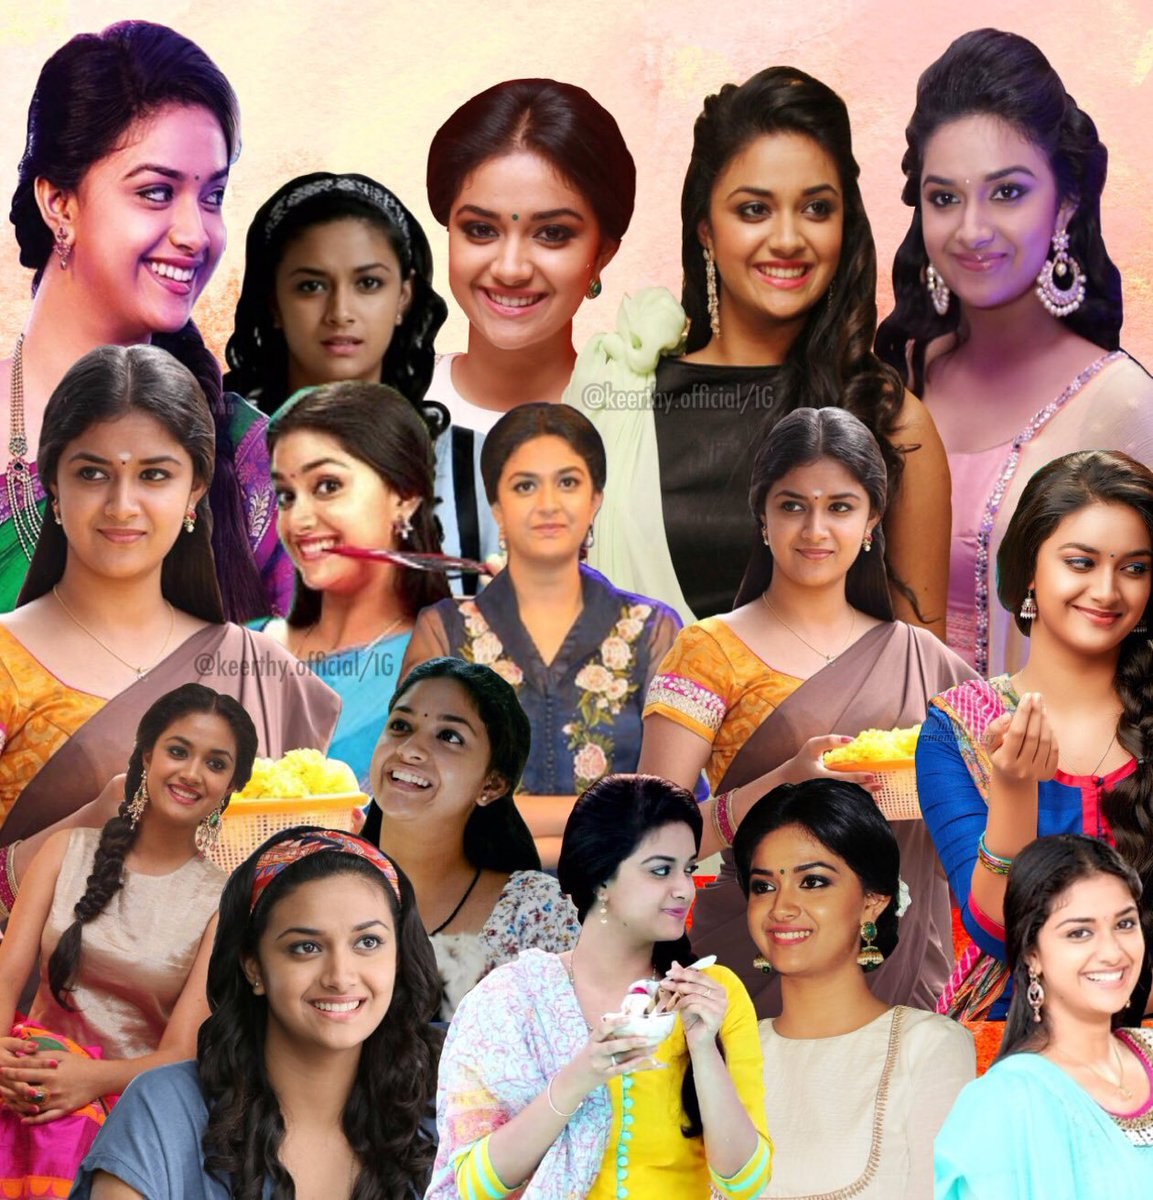 Let&#39;s Celebrate #Rare Bithday of Our Rising @KeerthyOfficial   #HBDAlluringKEERTHY<br>http://pic.twitter.com/TRLhW3PUEj